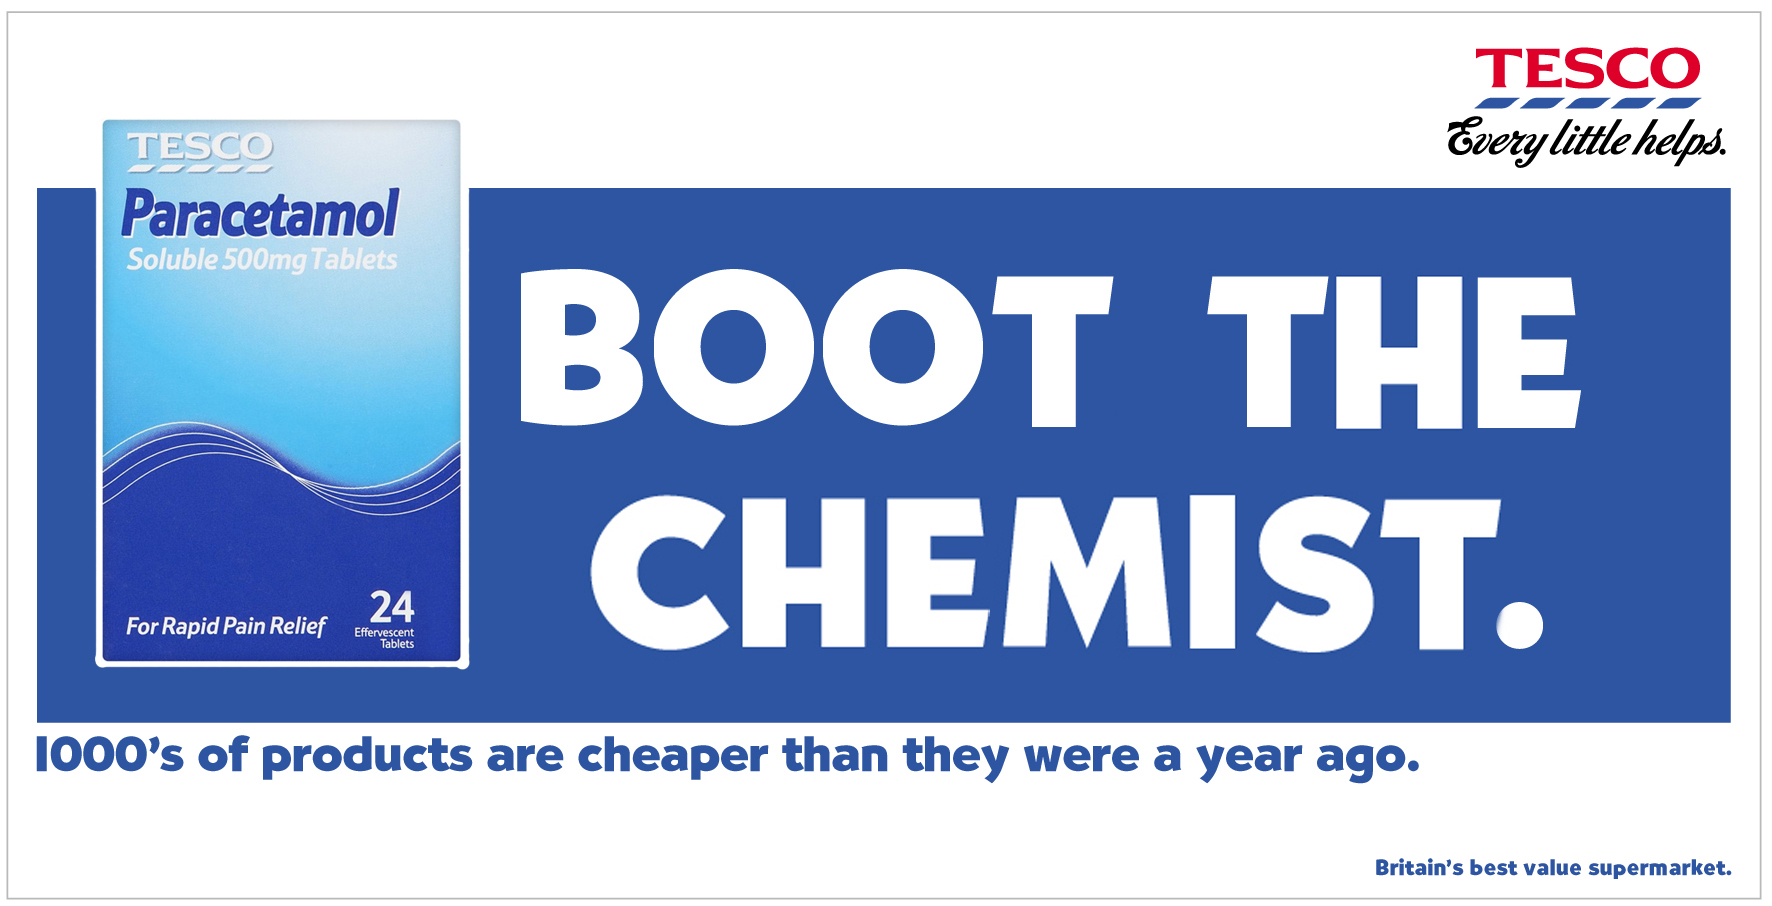 Tesco Boot the chemist